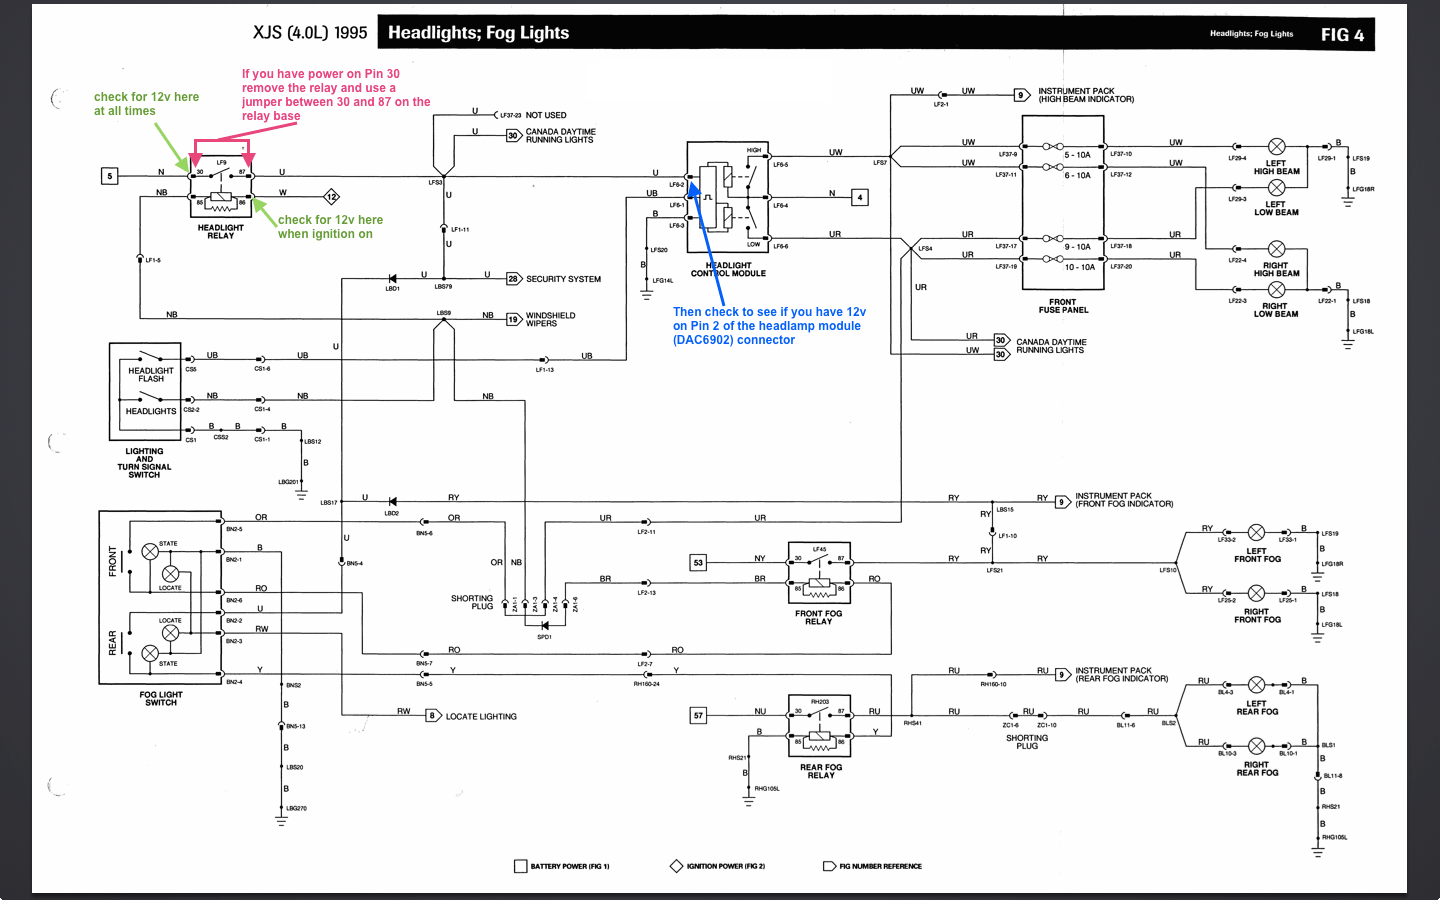 2003 jaguar x type awd fuse box diagram trusted wiring diagram 2004 jaguar x type [ 1440 x 900 Pixel ]